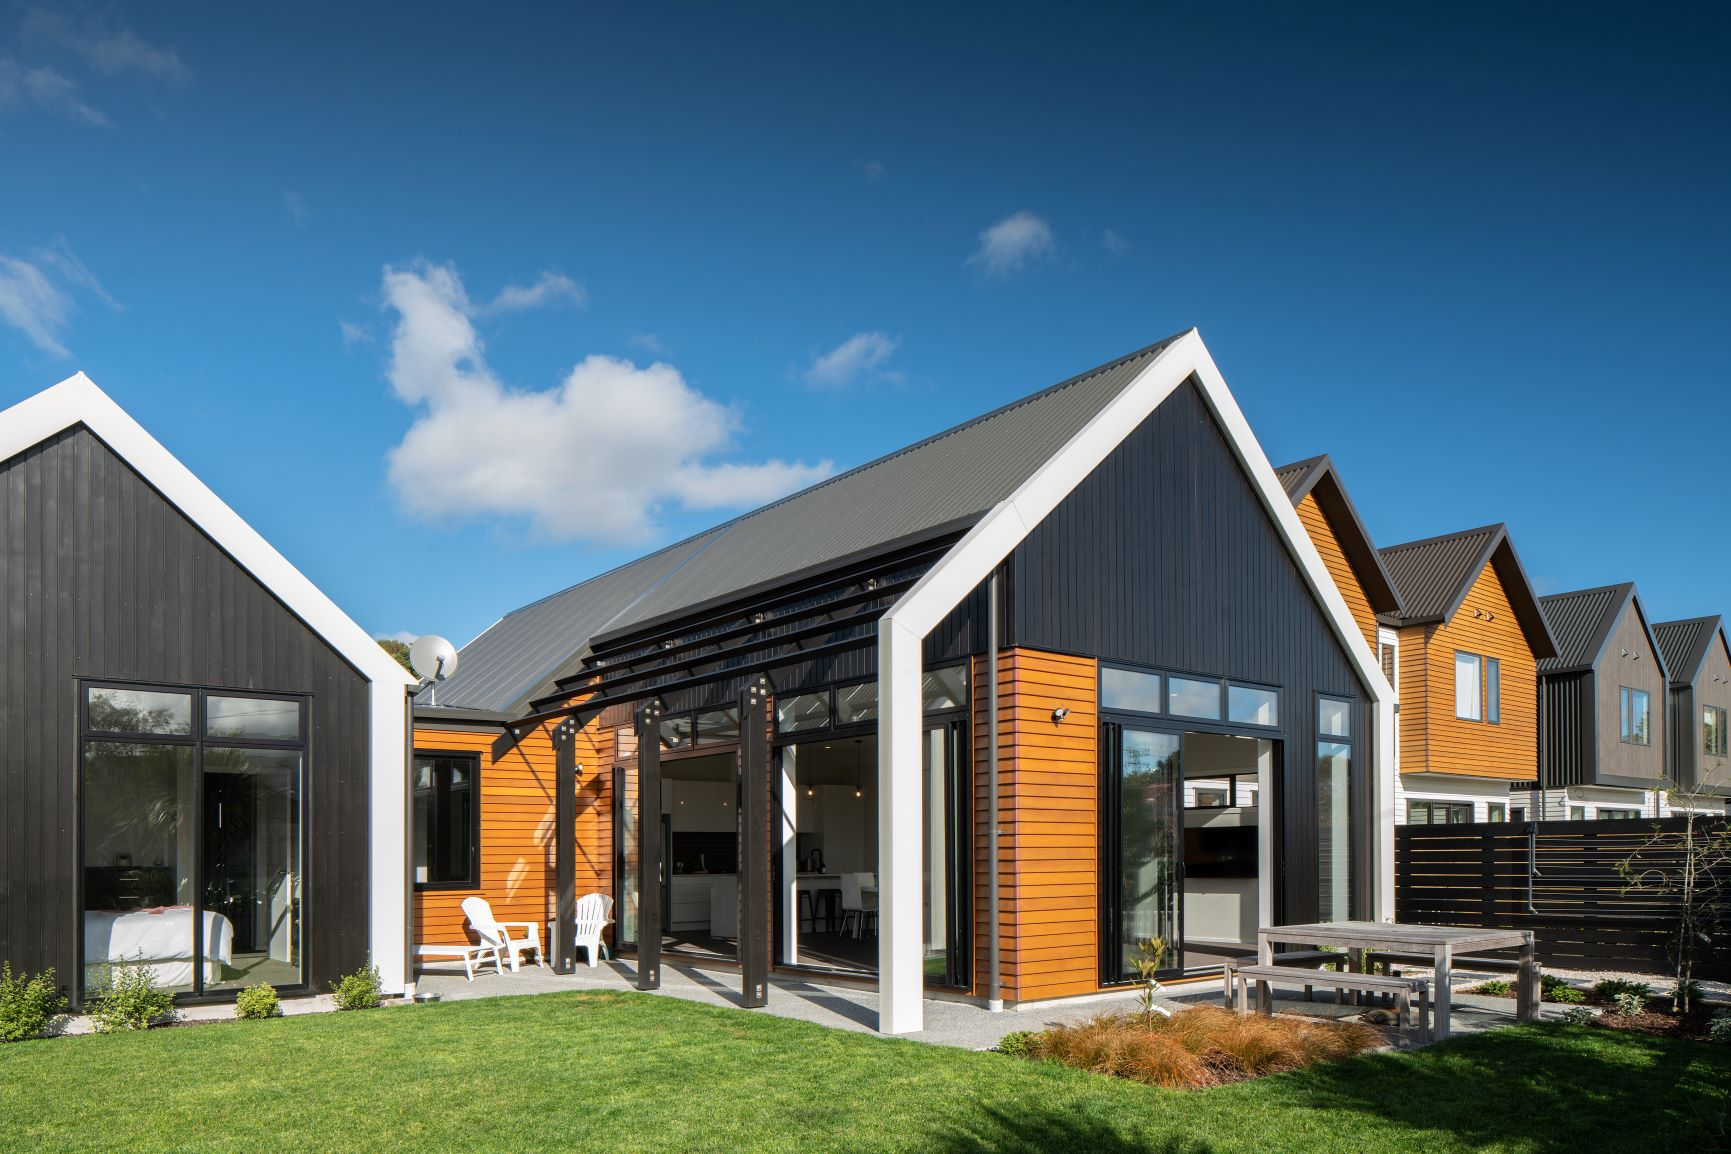 Four bedroom house at the Fairfield Waters development by Urban Plus